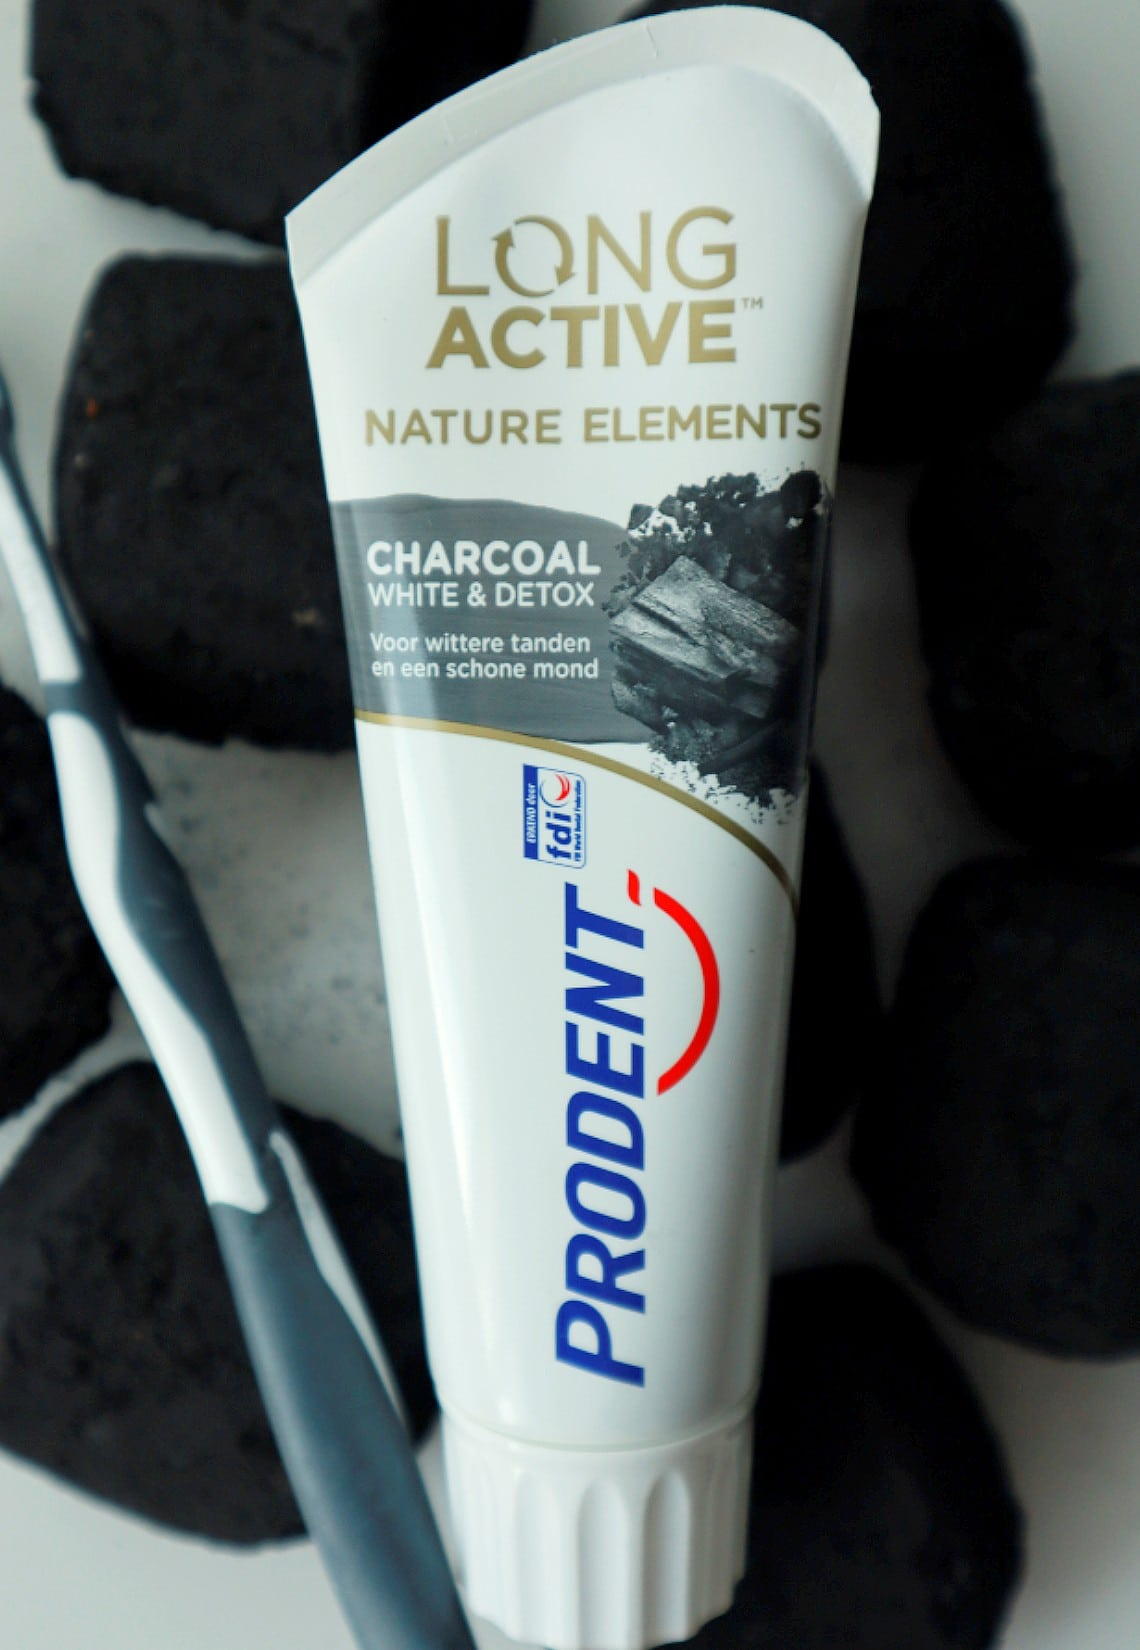 Prodent long active nature elements charcoal white & detox tandpasta